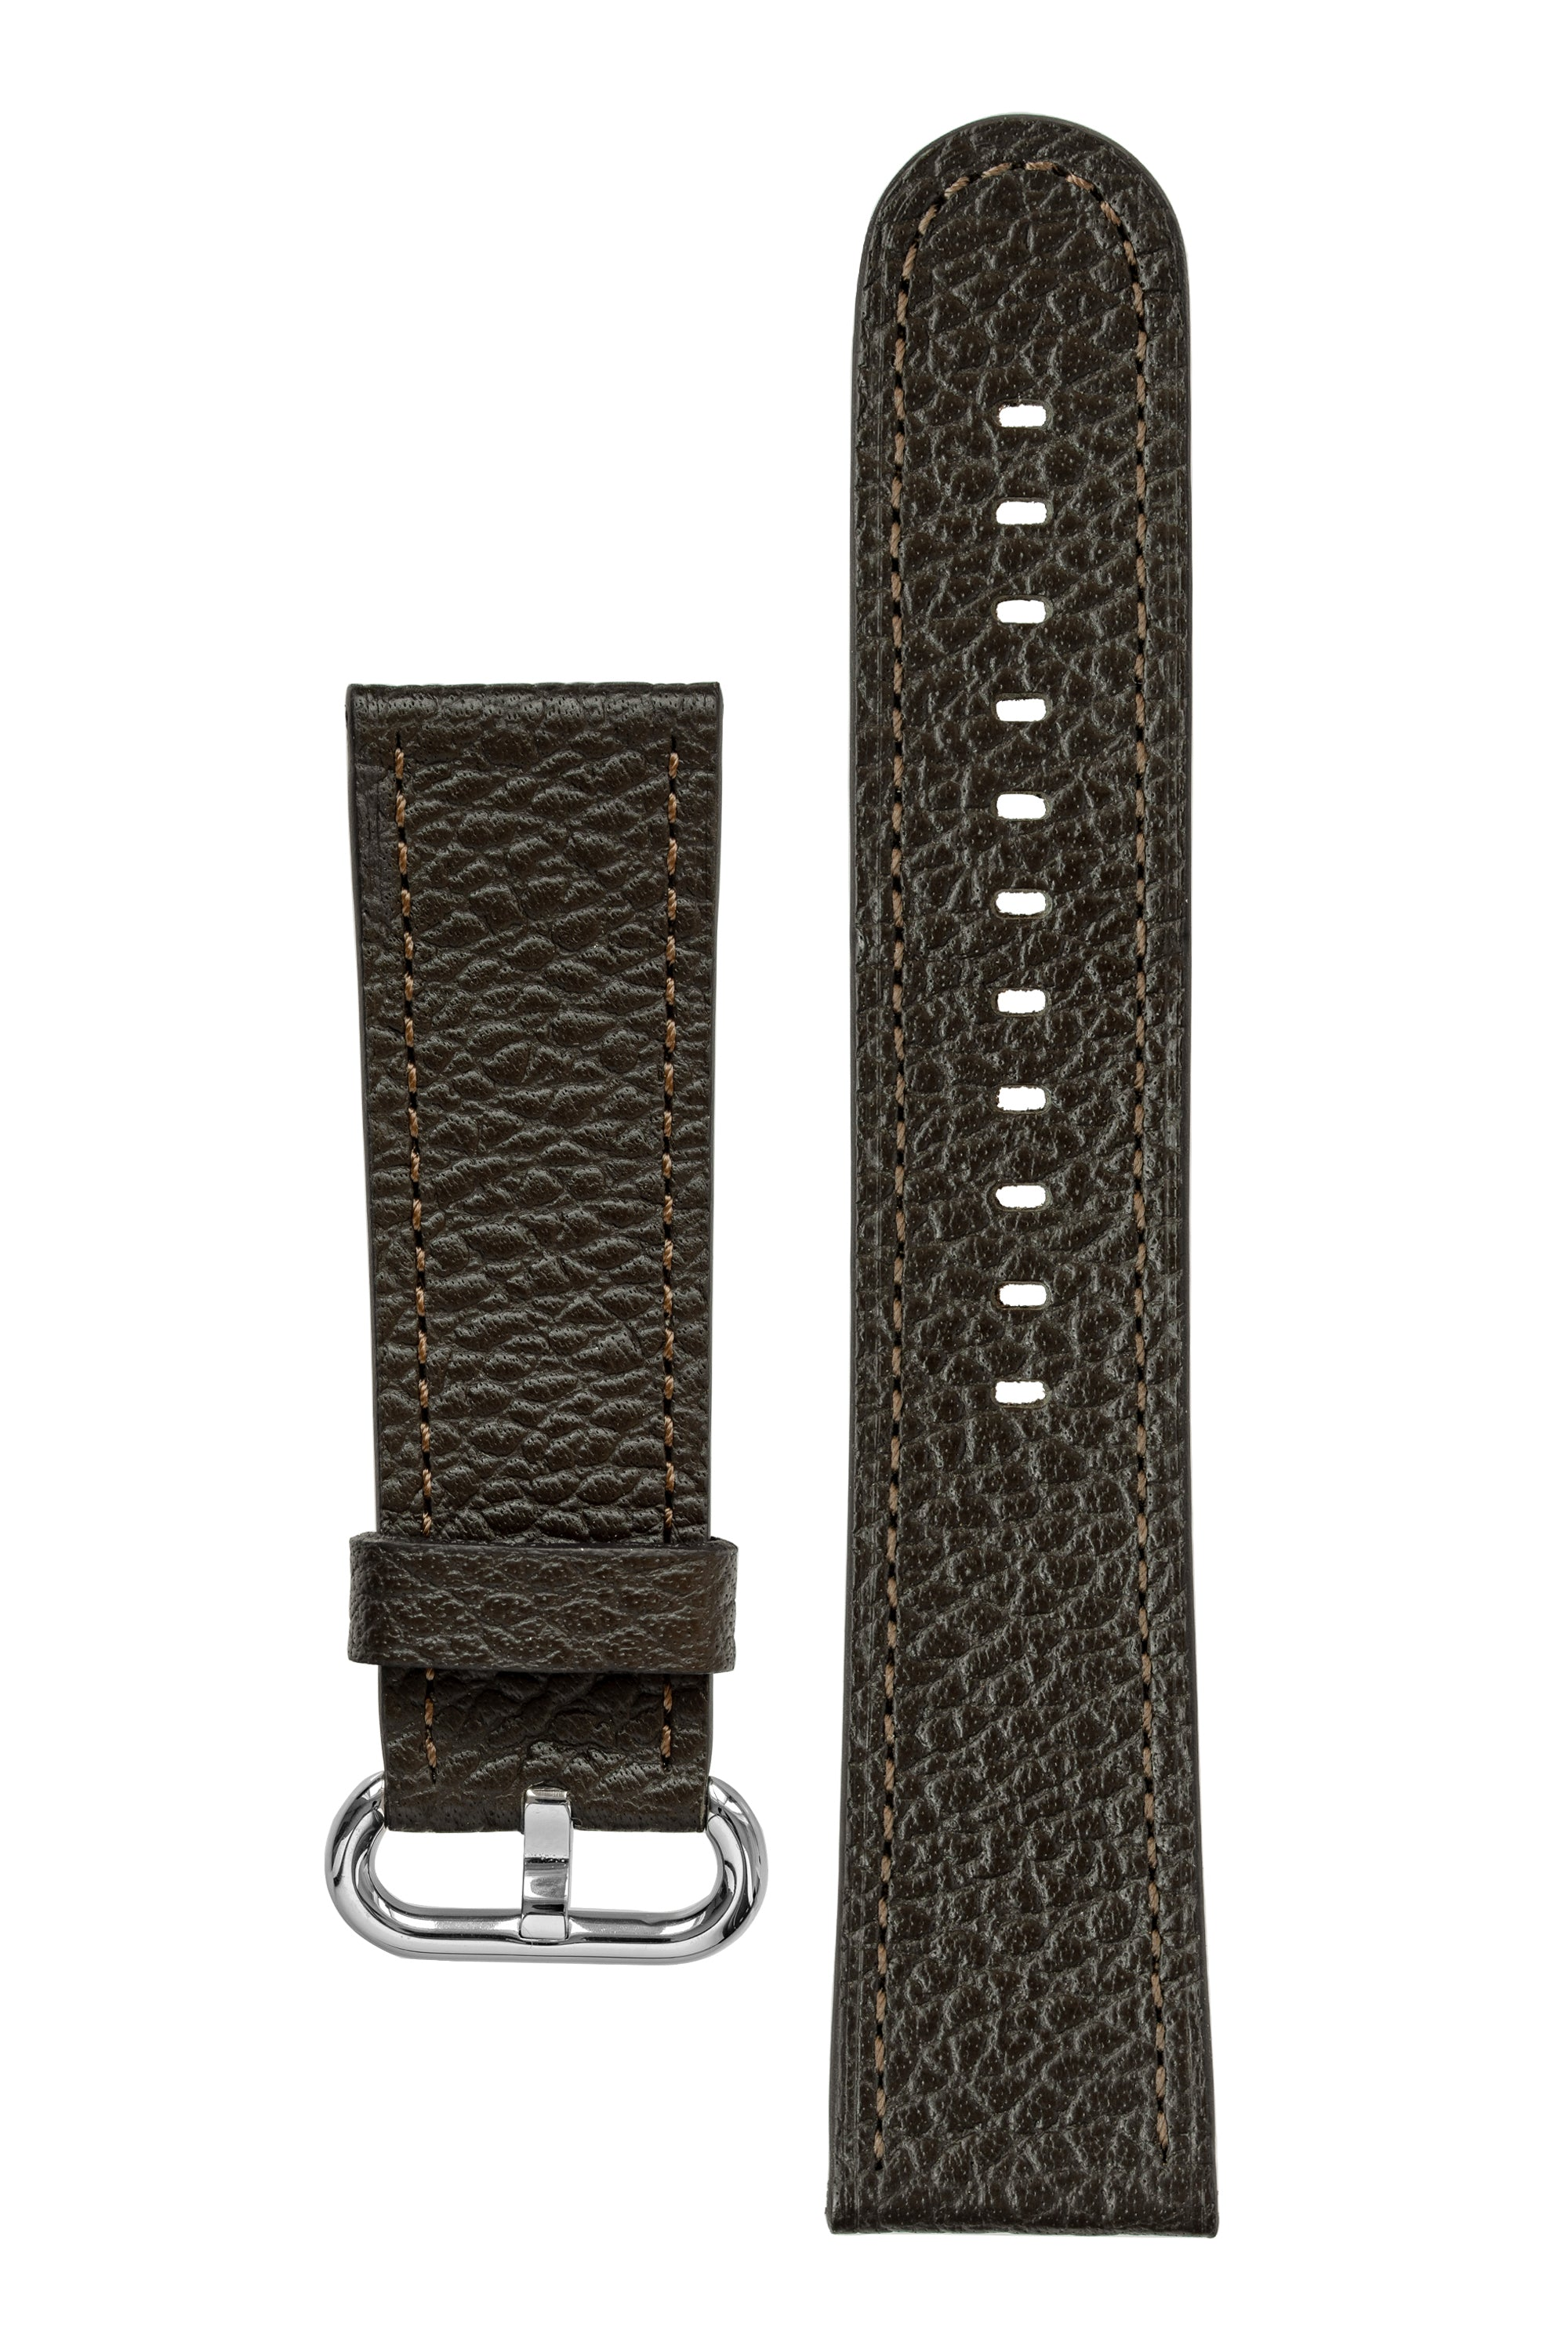 Rios1931 CONNECT Buffalo Leather Watch Strap for 42 / 44mm Apple Watch in MOCHA